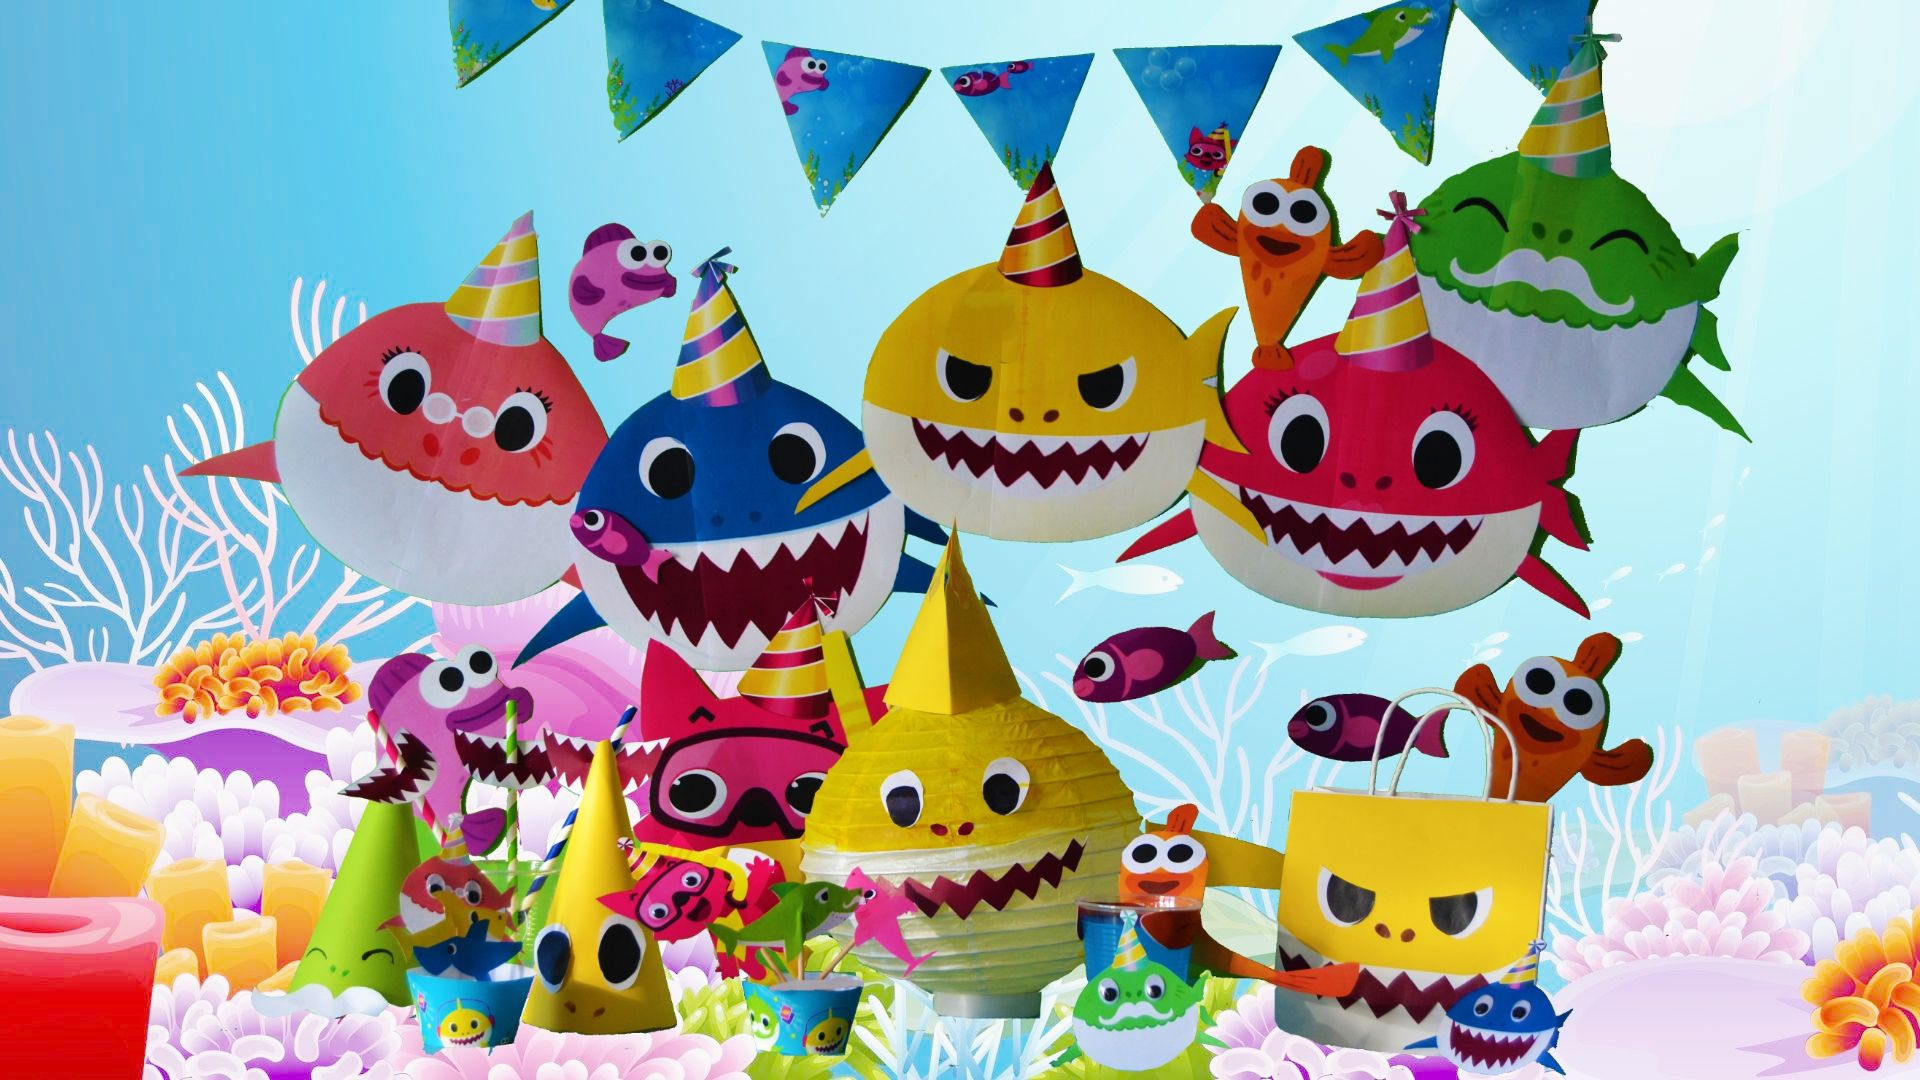 Diy Baby Shark Song Party Decoration Decor Crafts Under The Sea Kids Party Ideas Pinkfong Shark Themed Birthday Party Shark Birthday Party Shark Theme Birthday